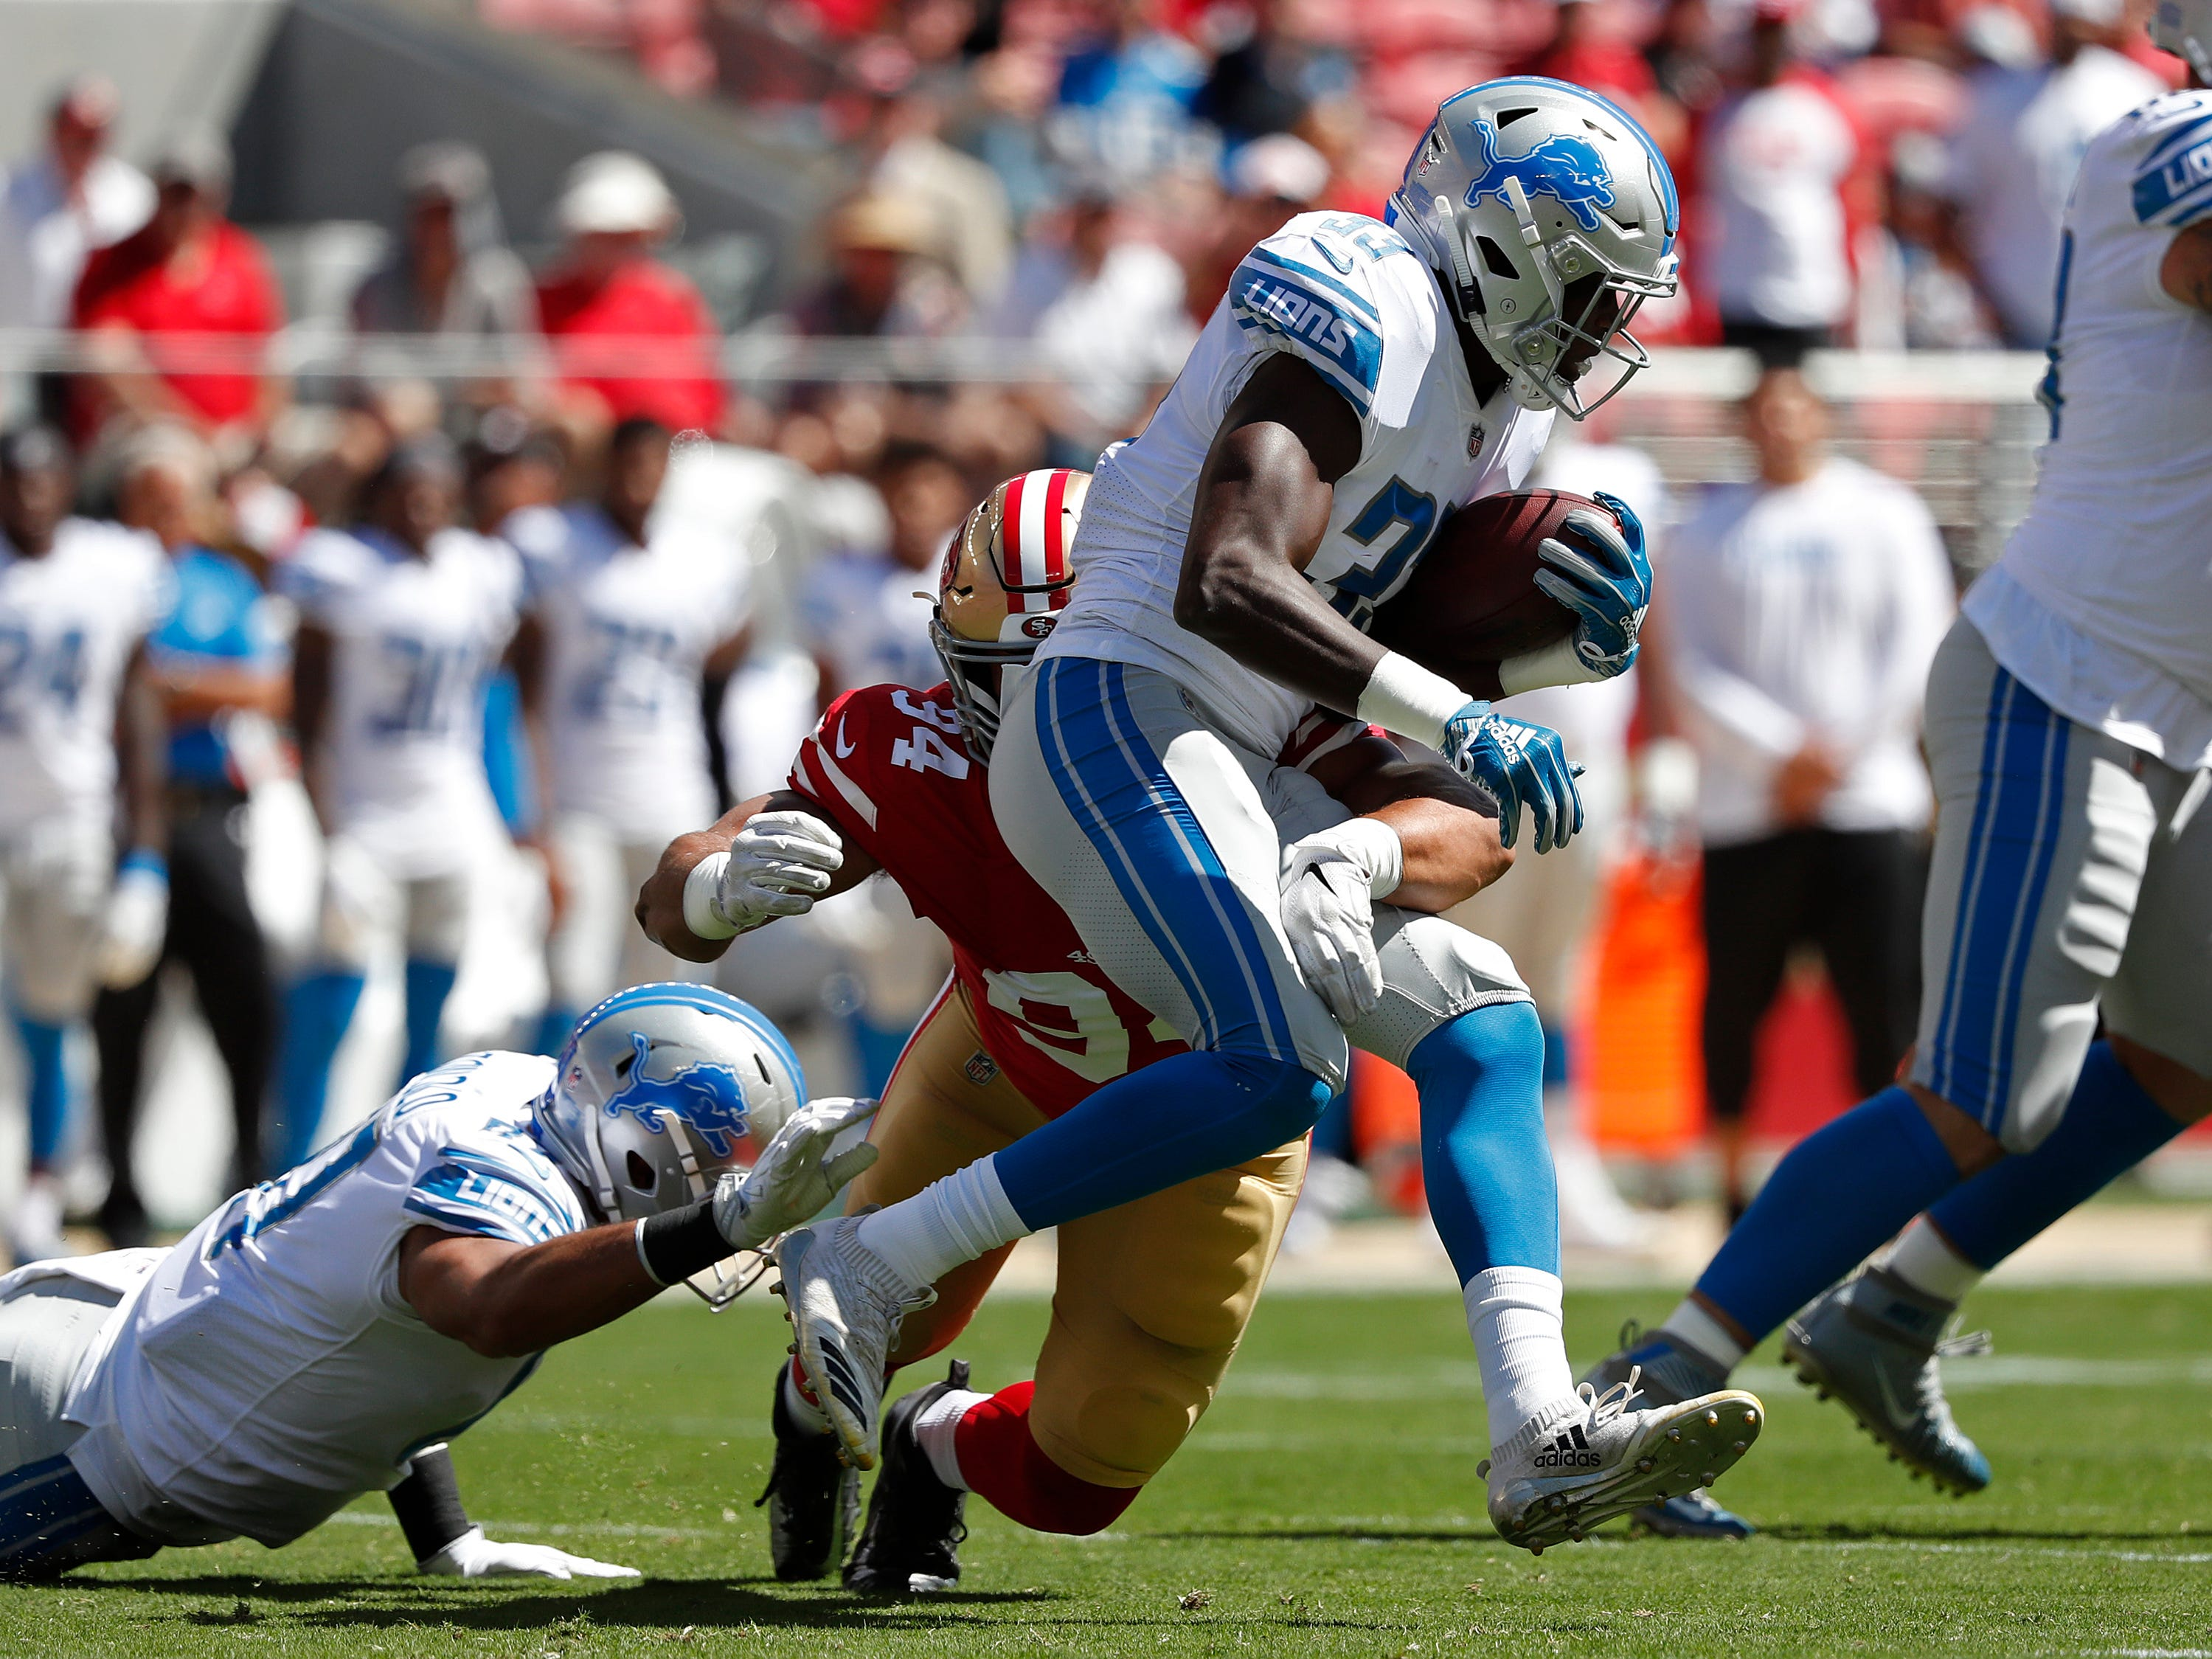 Detroit Lions running back Kerryon Johnson runs with the ball away from San Francisco 49ers defensive end Solomon Thomas during the first half.